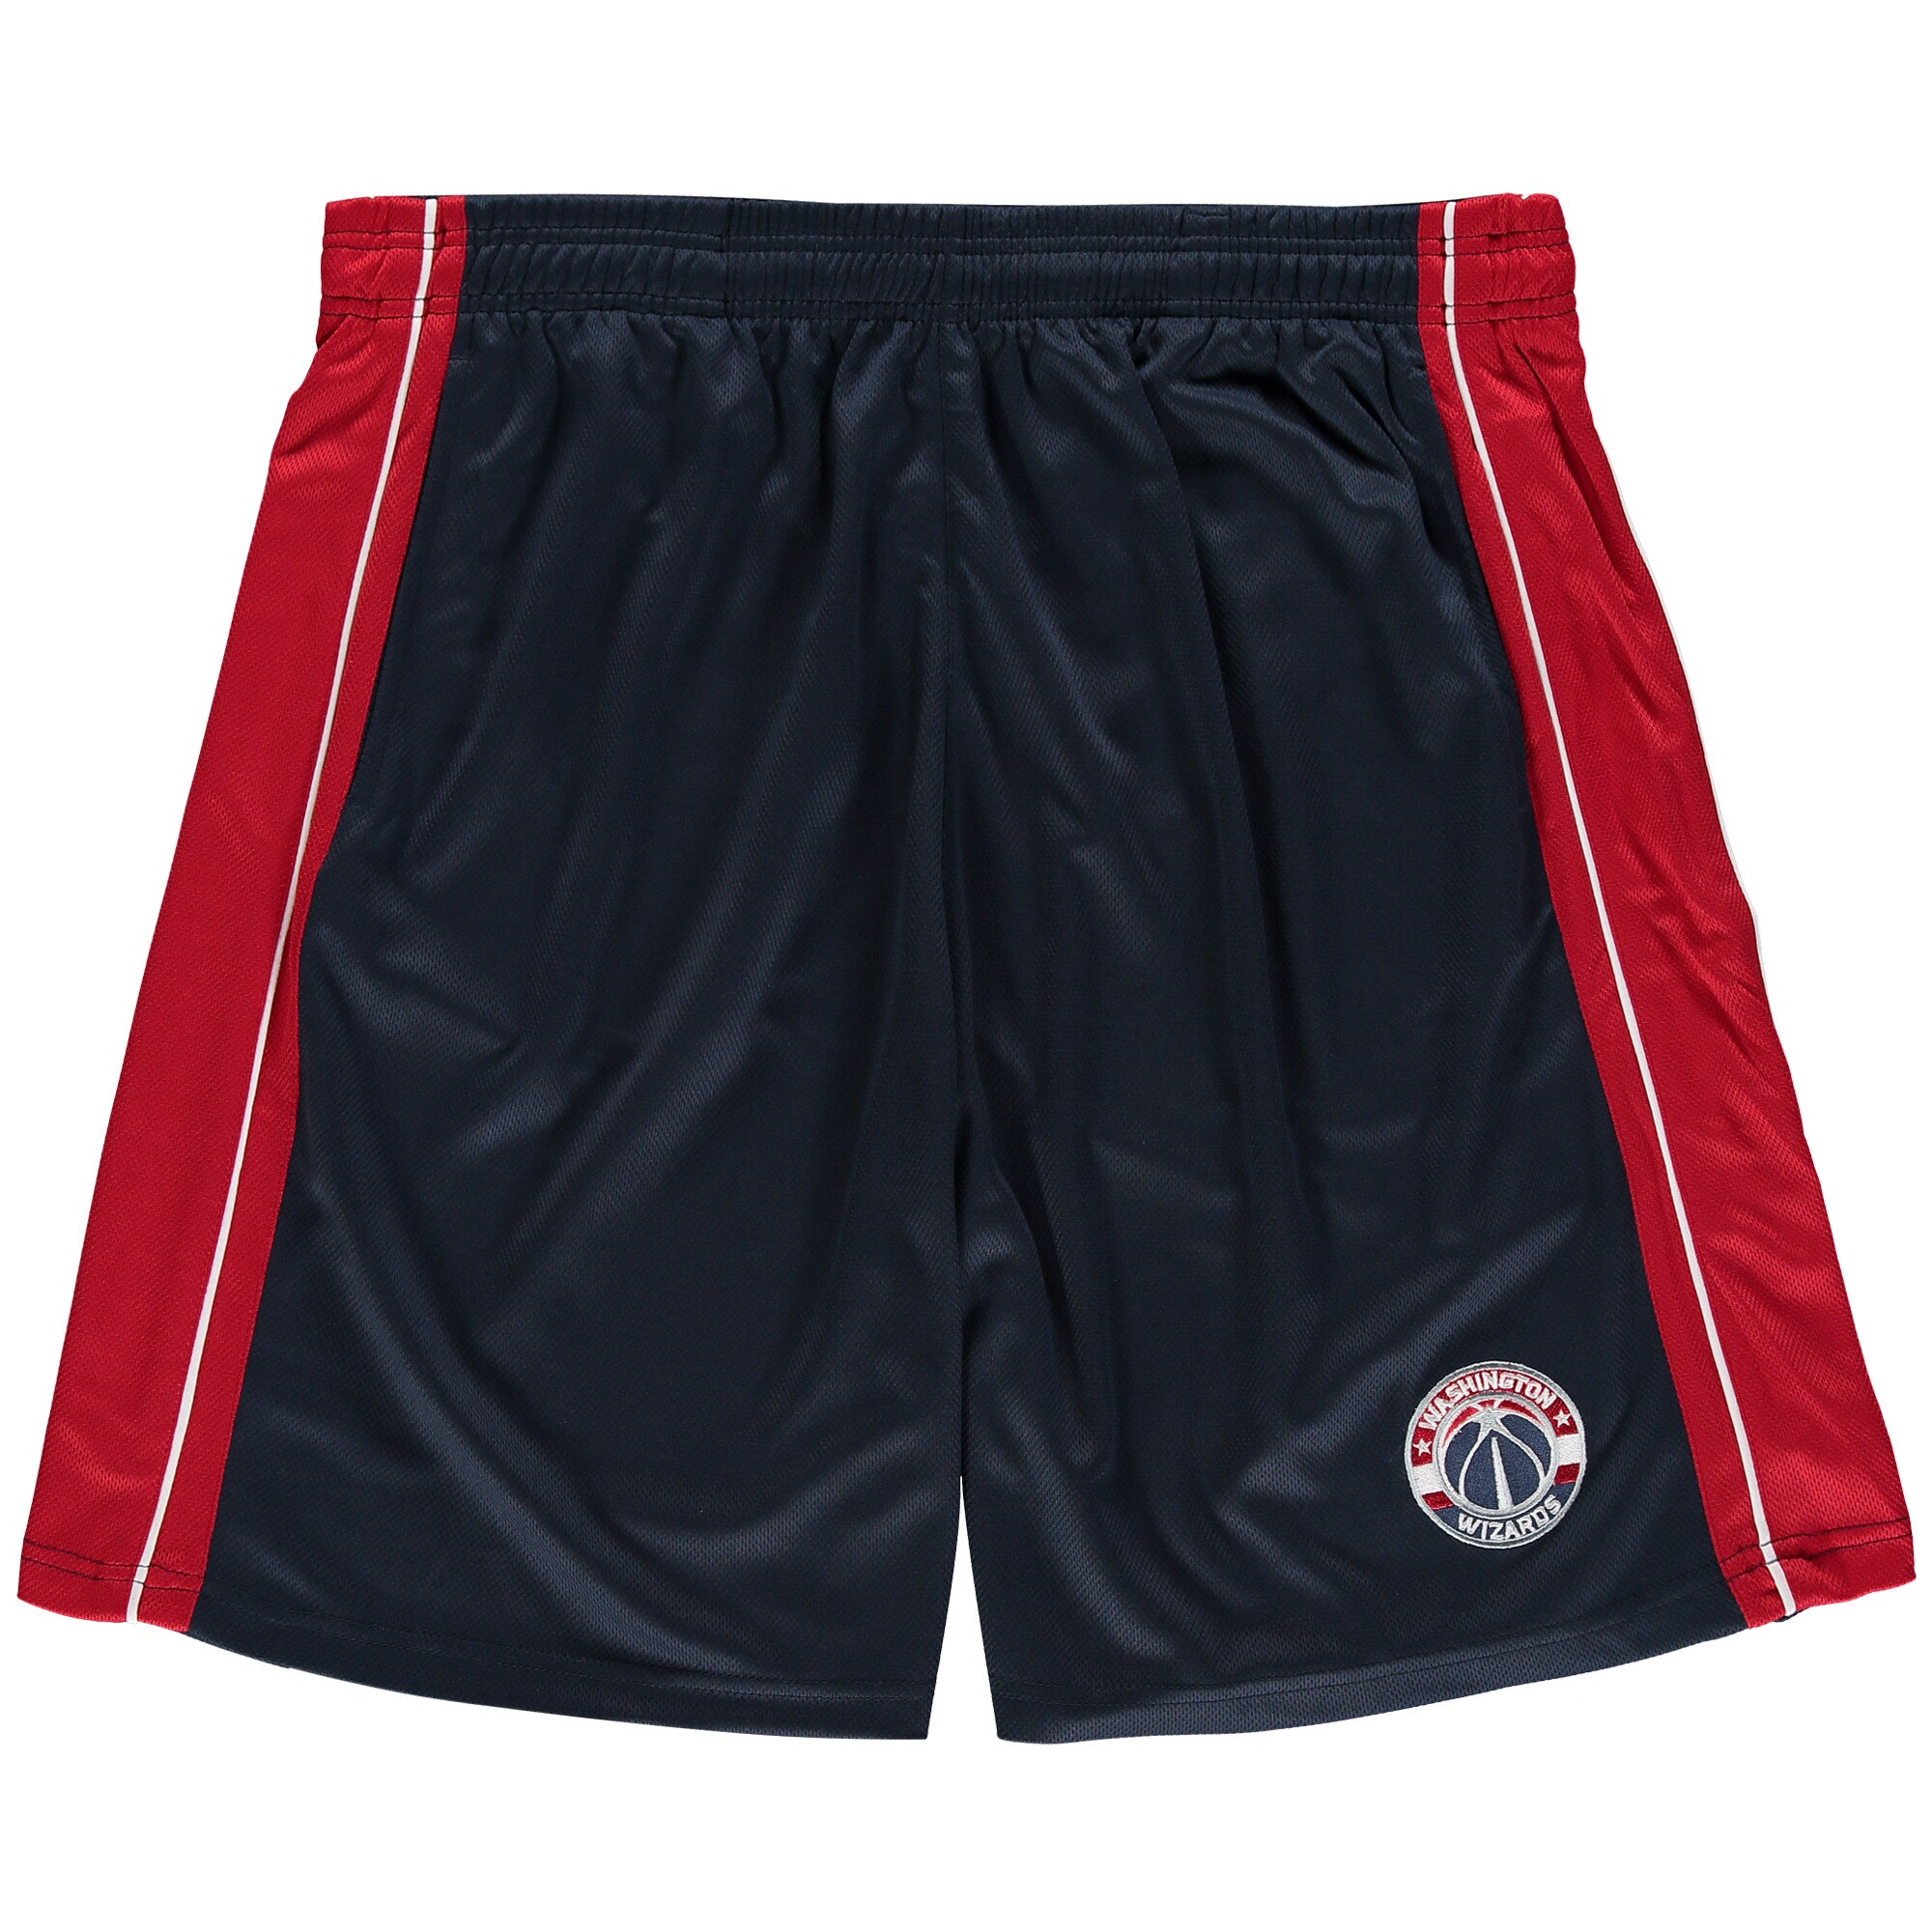 Washington Wizards Majestic Big & Tall Birdseye Shorts - Navy/Red